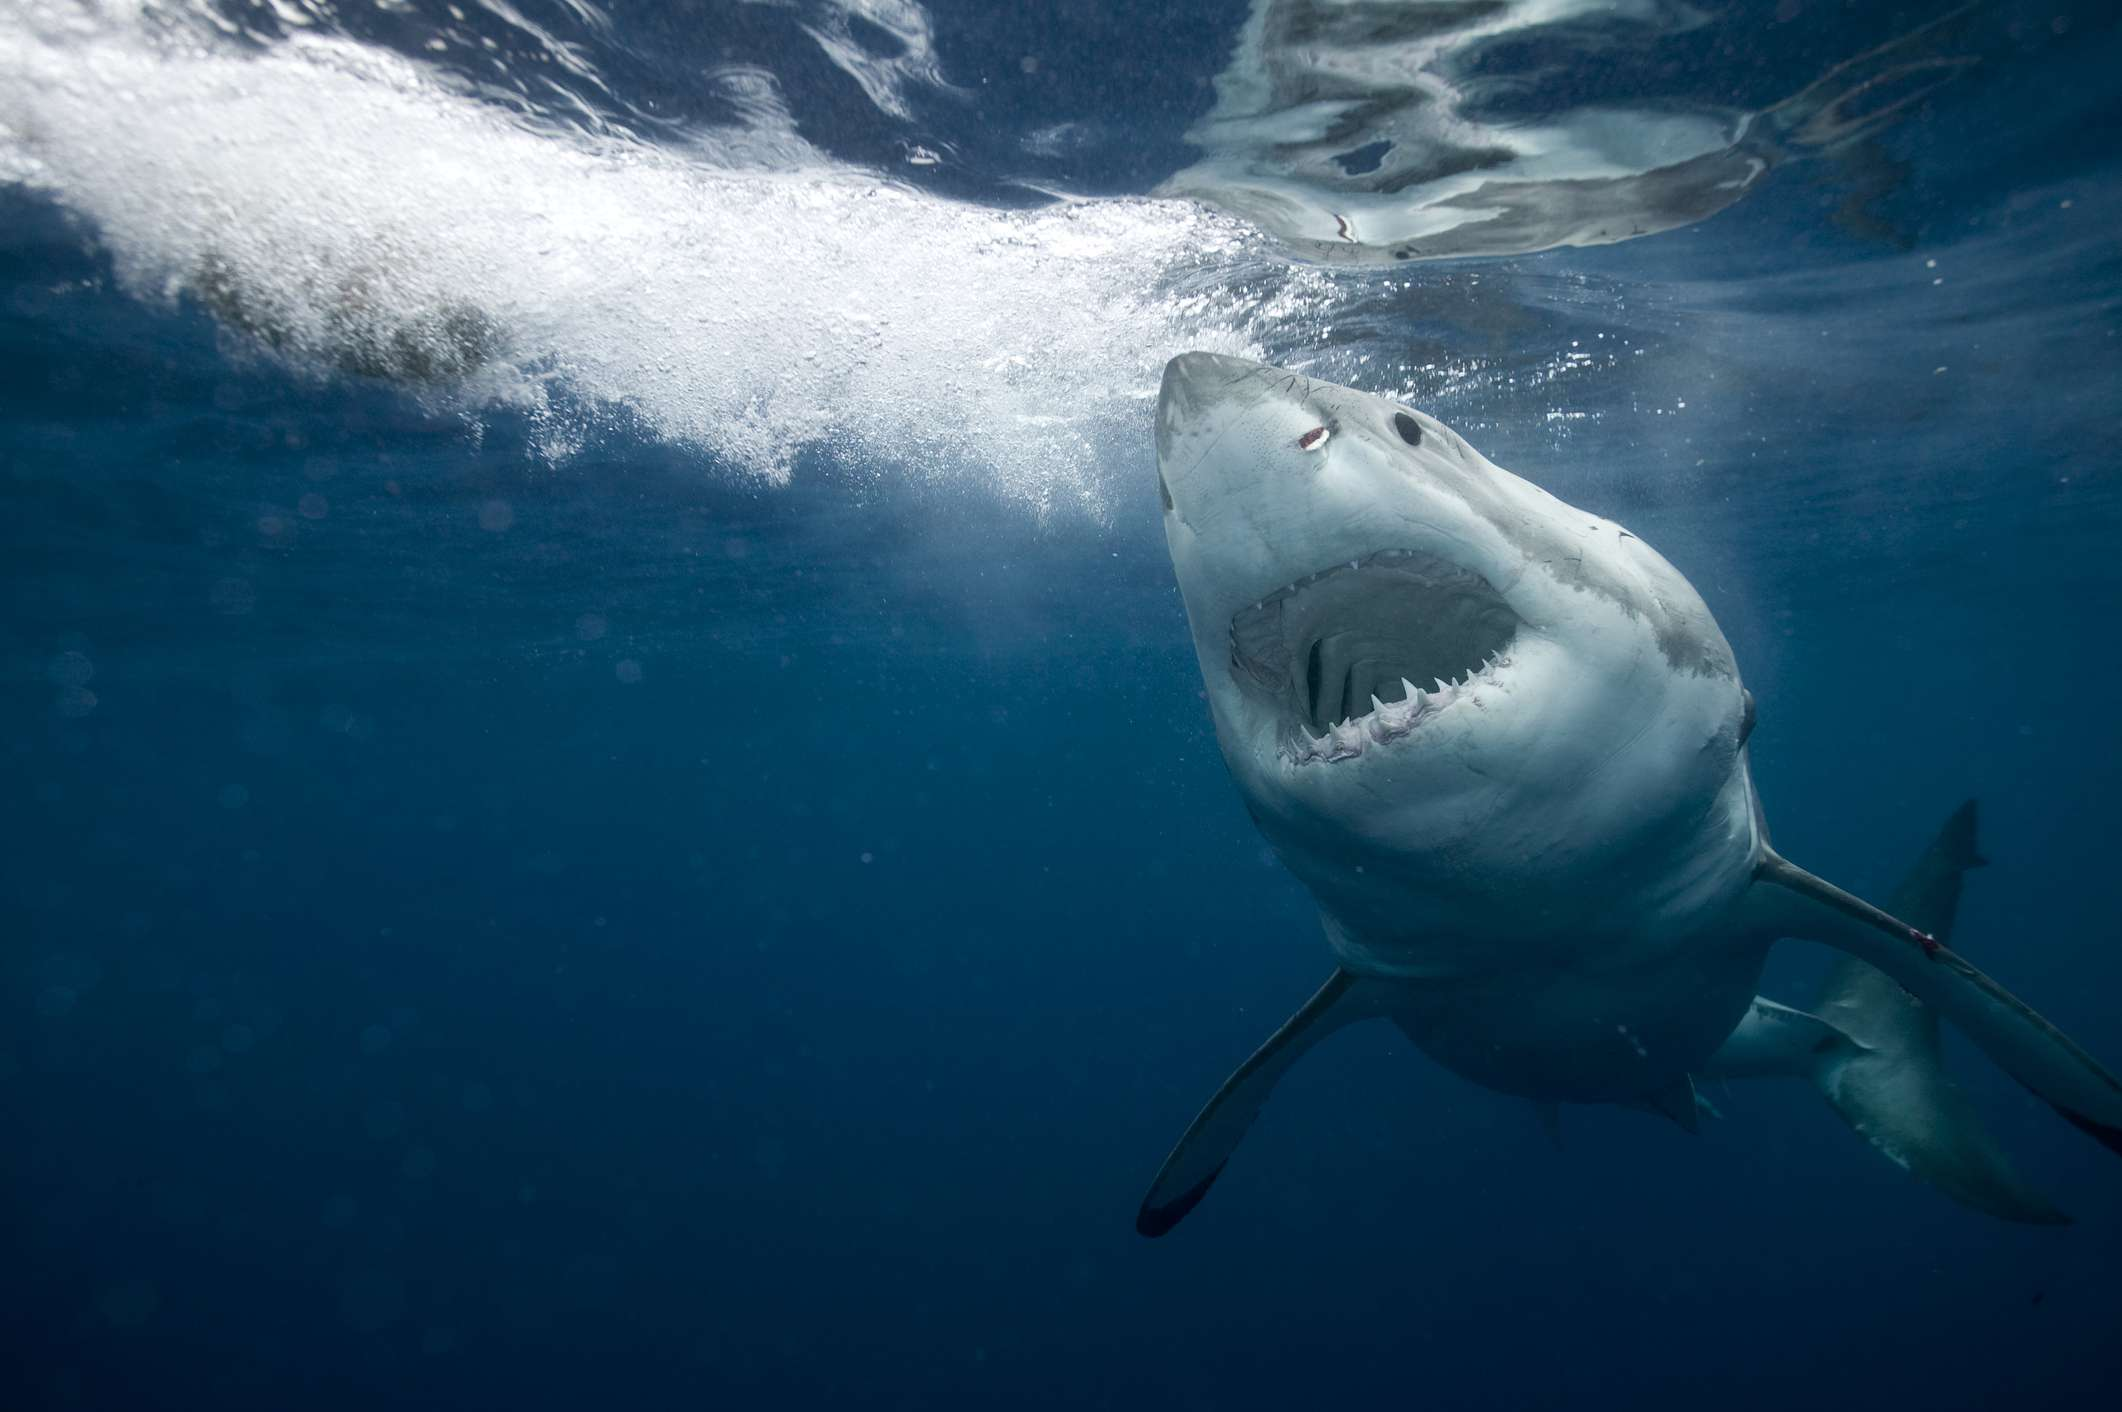 great white shark swims with mouth open toward camera